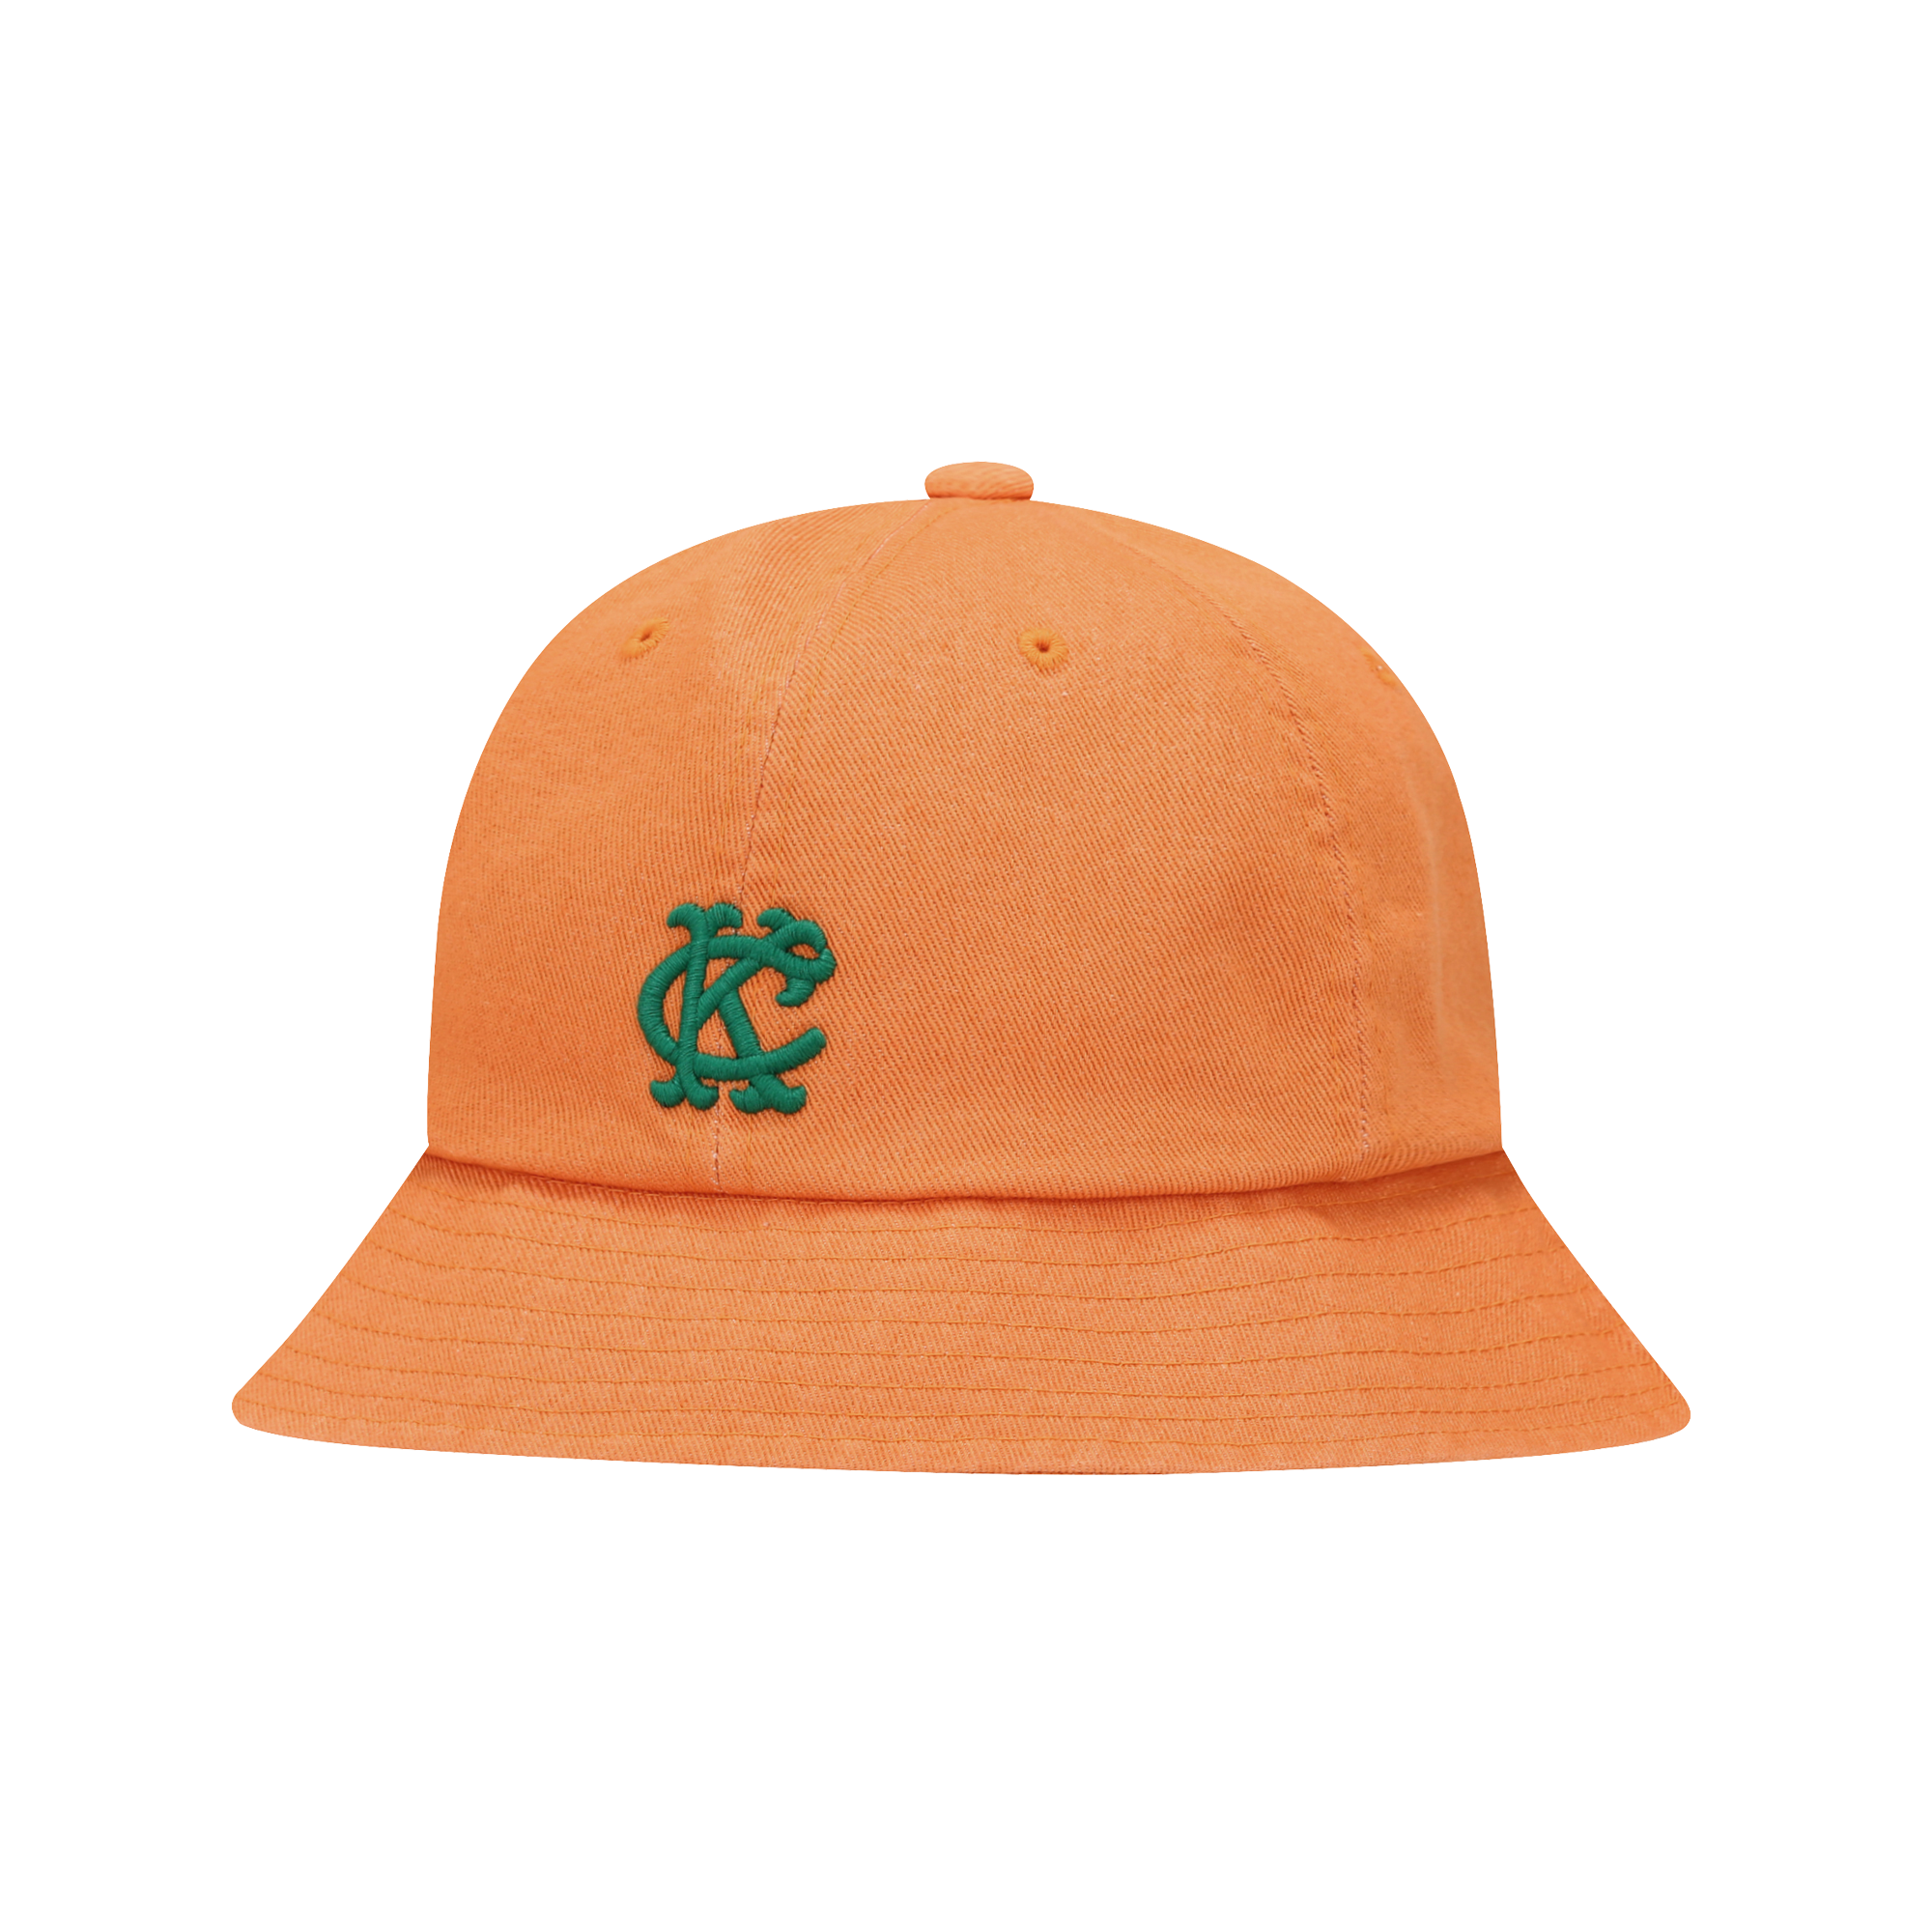 OAKLAND ATHLETICS COOPERS WASHED-OUT DOME HAT